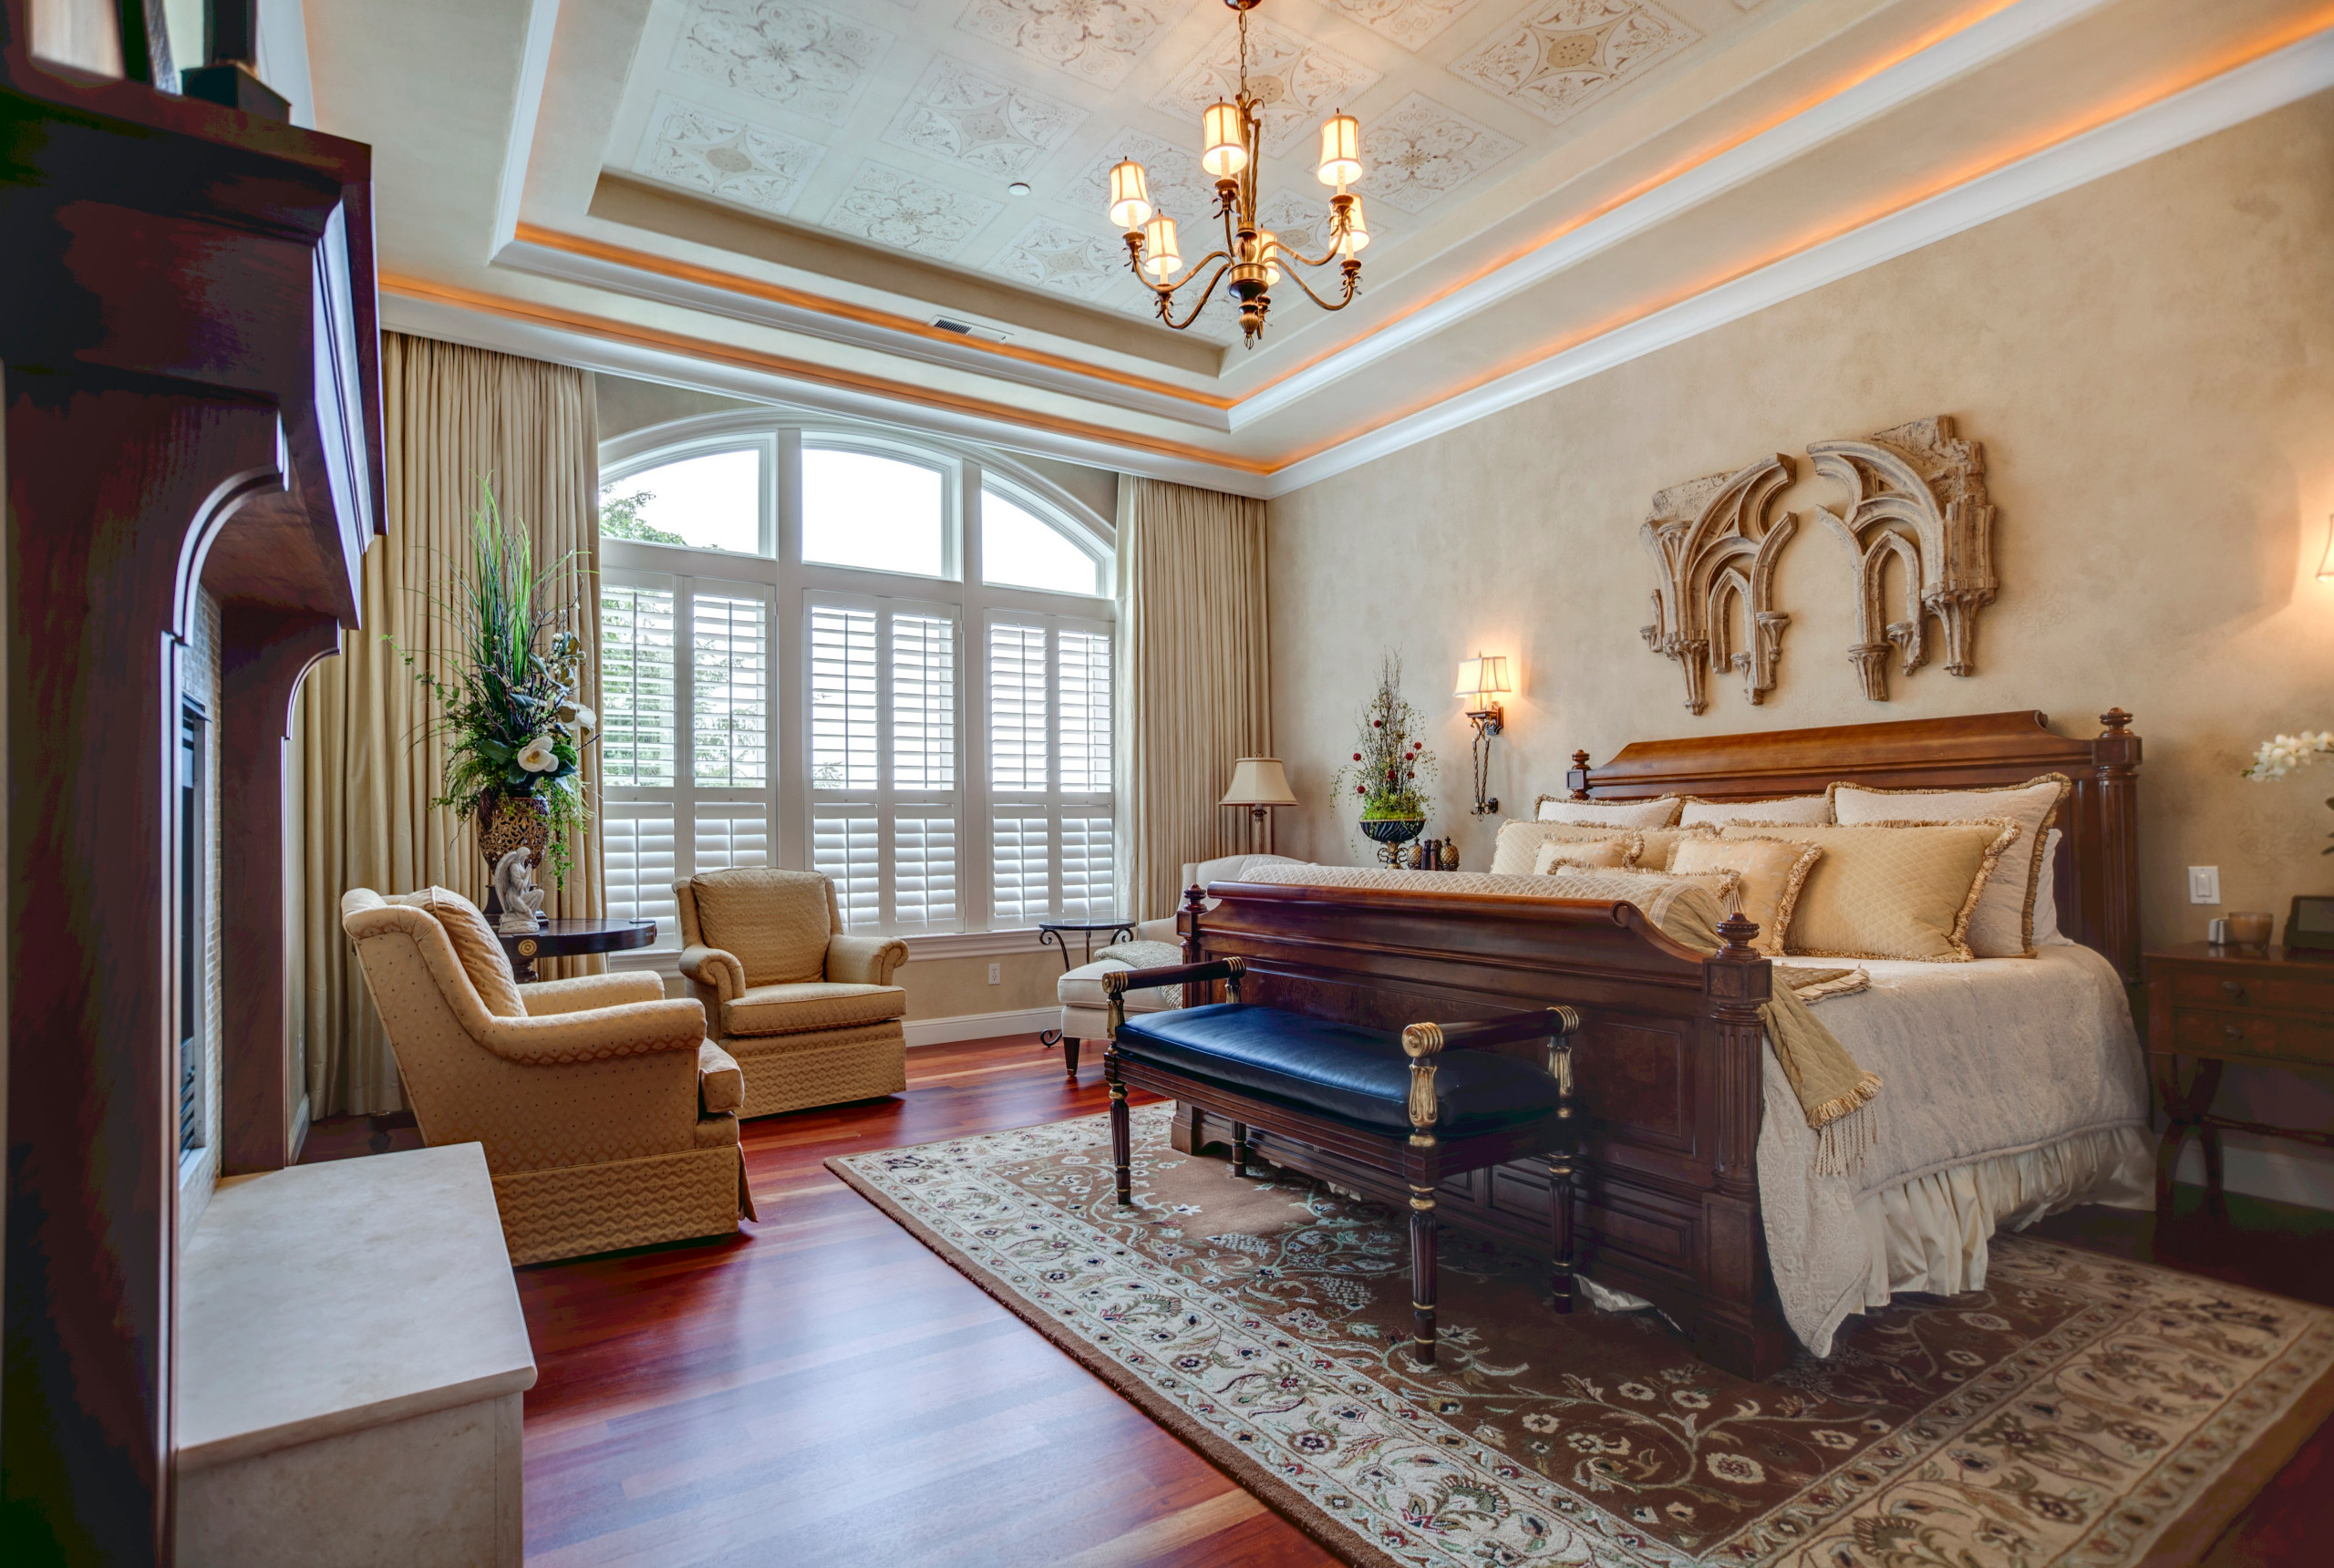 DREAMY MASTER SUITE